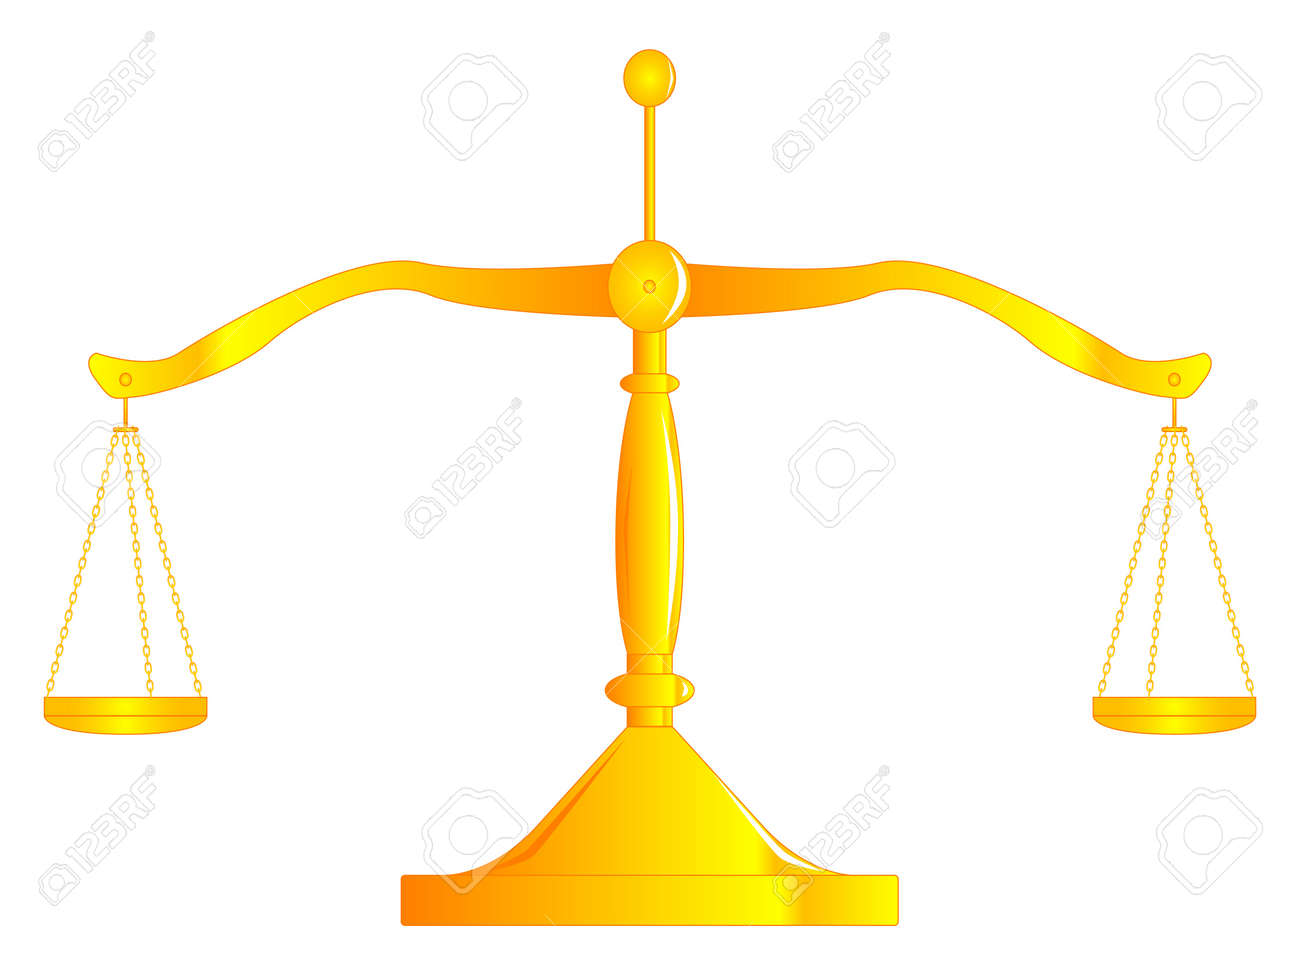 A pair of scales perfectly balanced, isolated over white. Stock Vector - 20246244